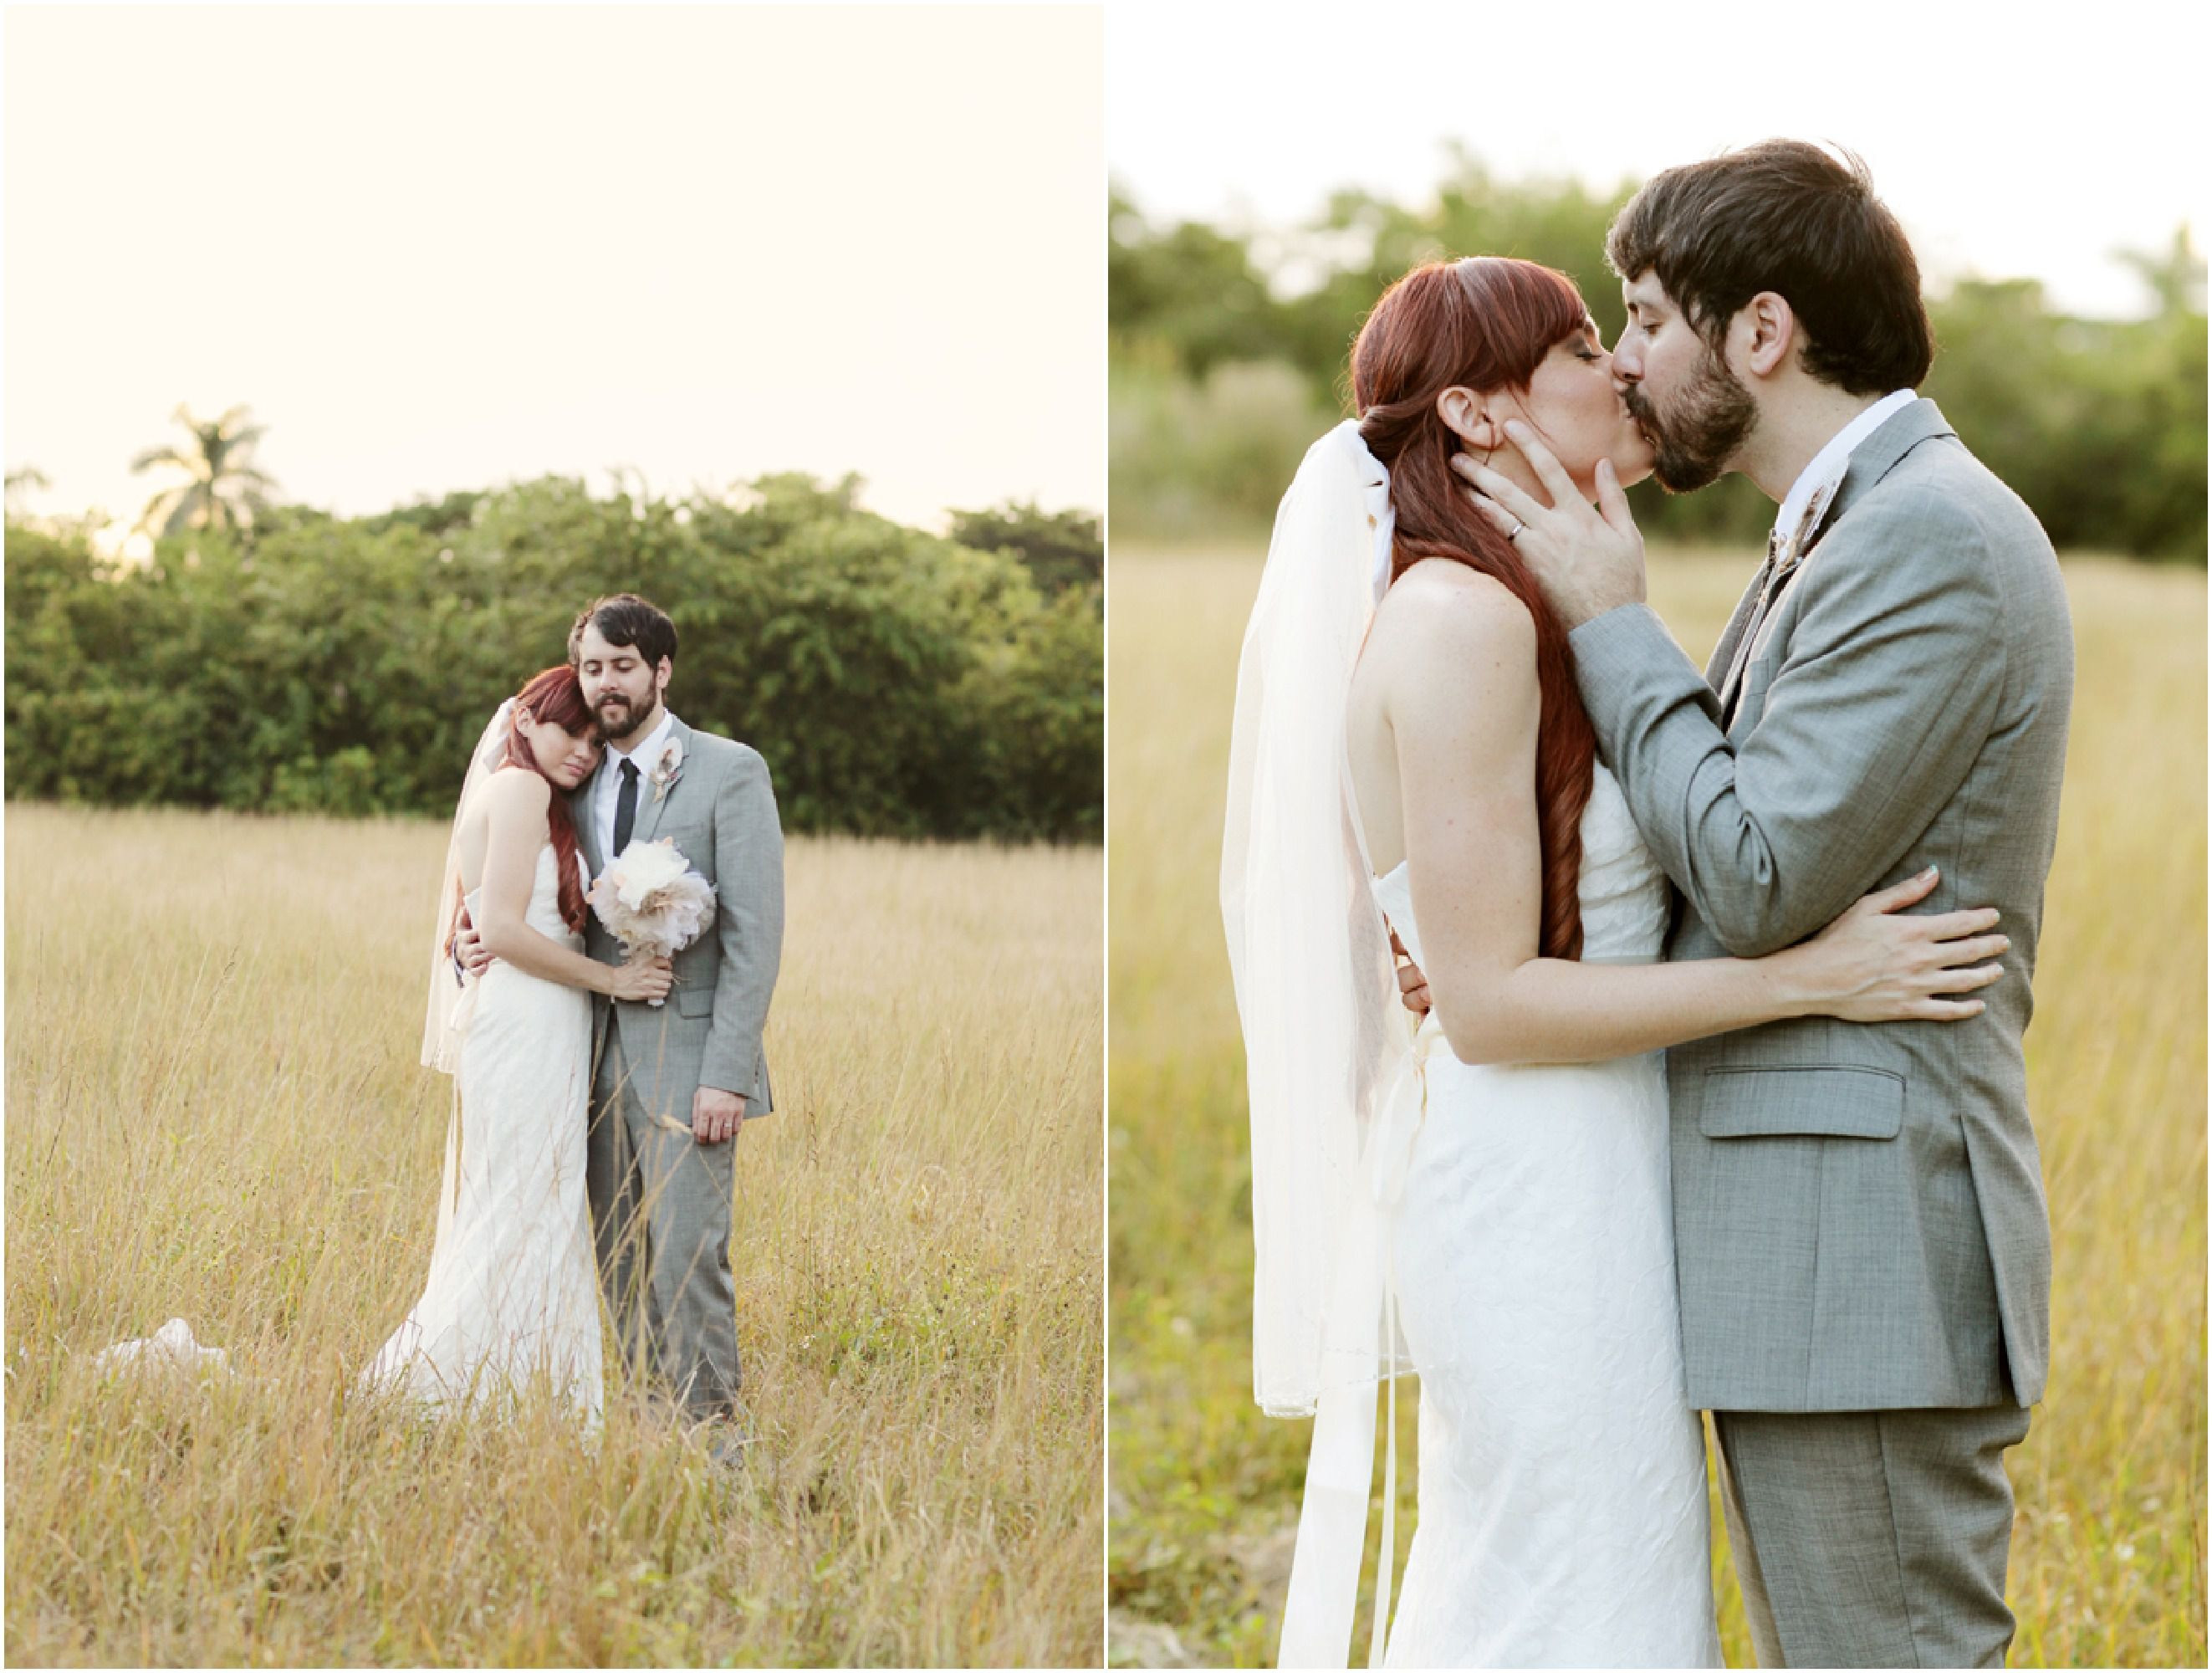 Chic Rustic Country Wedding: Vintage Inspired Southern Wedding